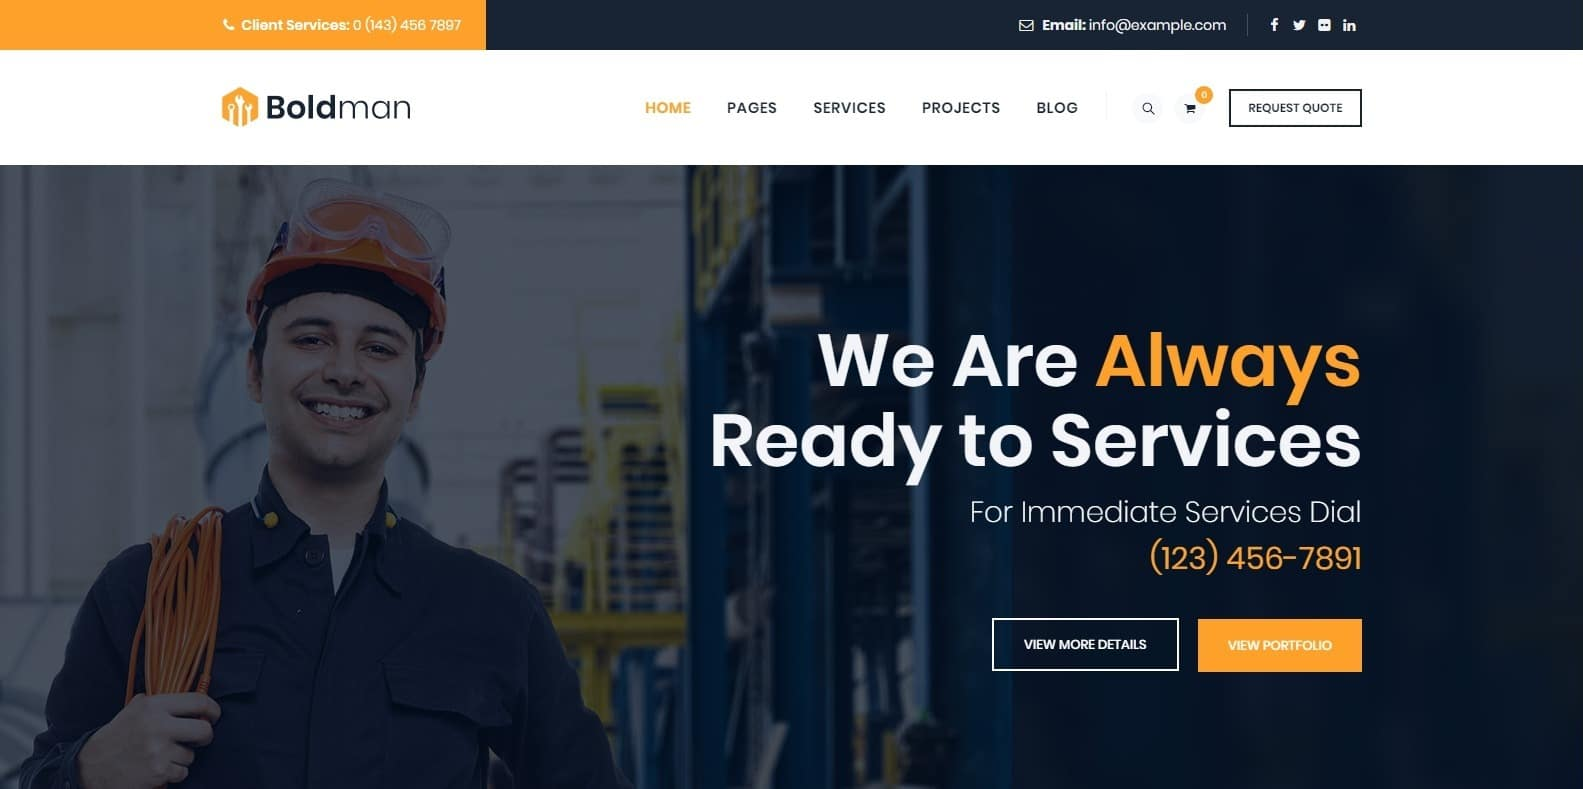 boldman-handyman-website-template-wordpress